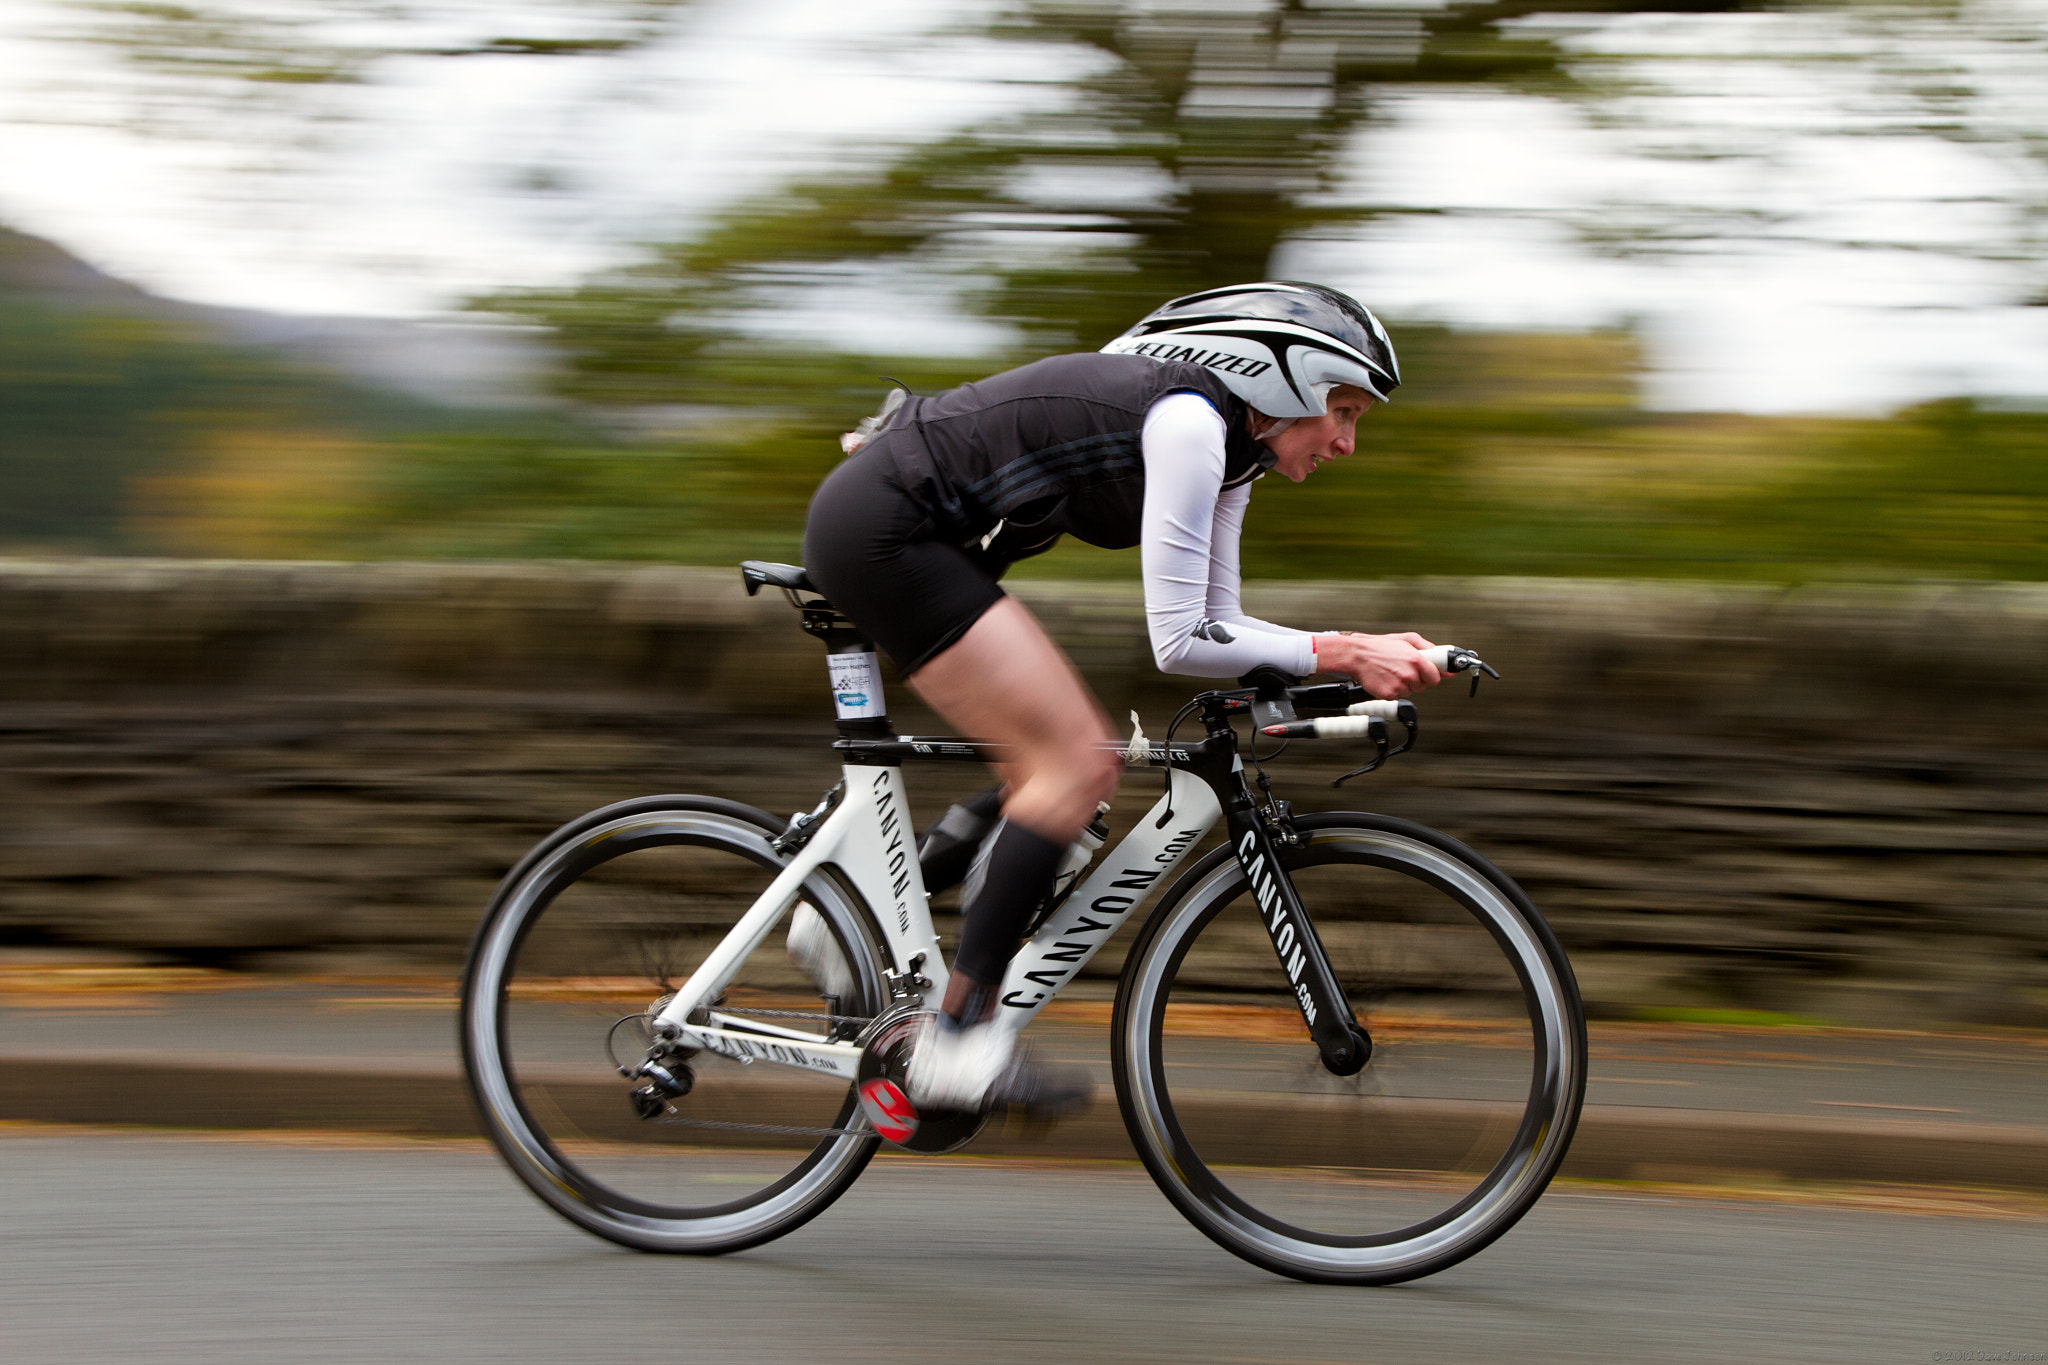 Photograph Tri-athlete by Dave Johnson on 500px